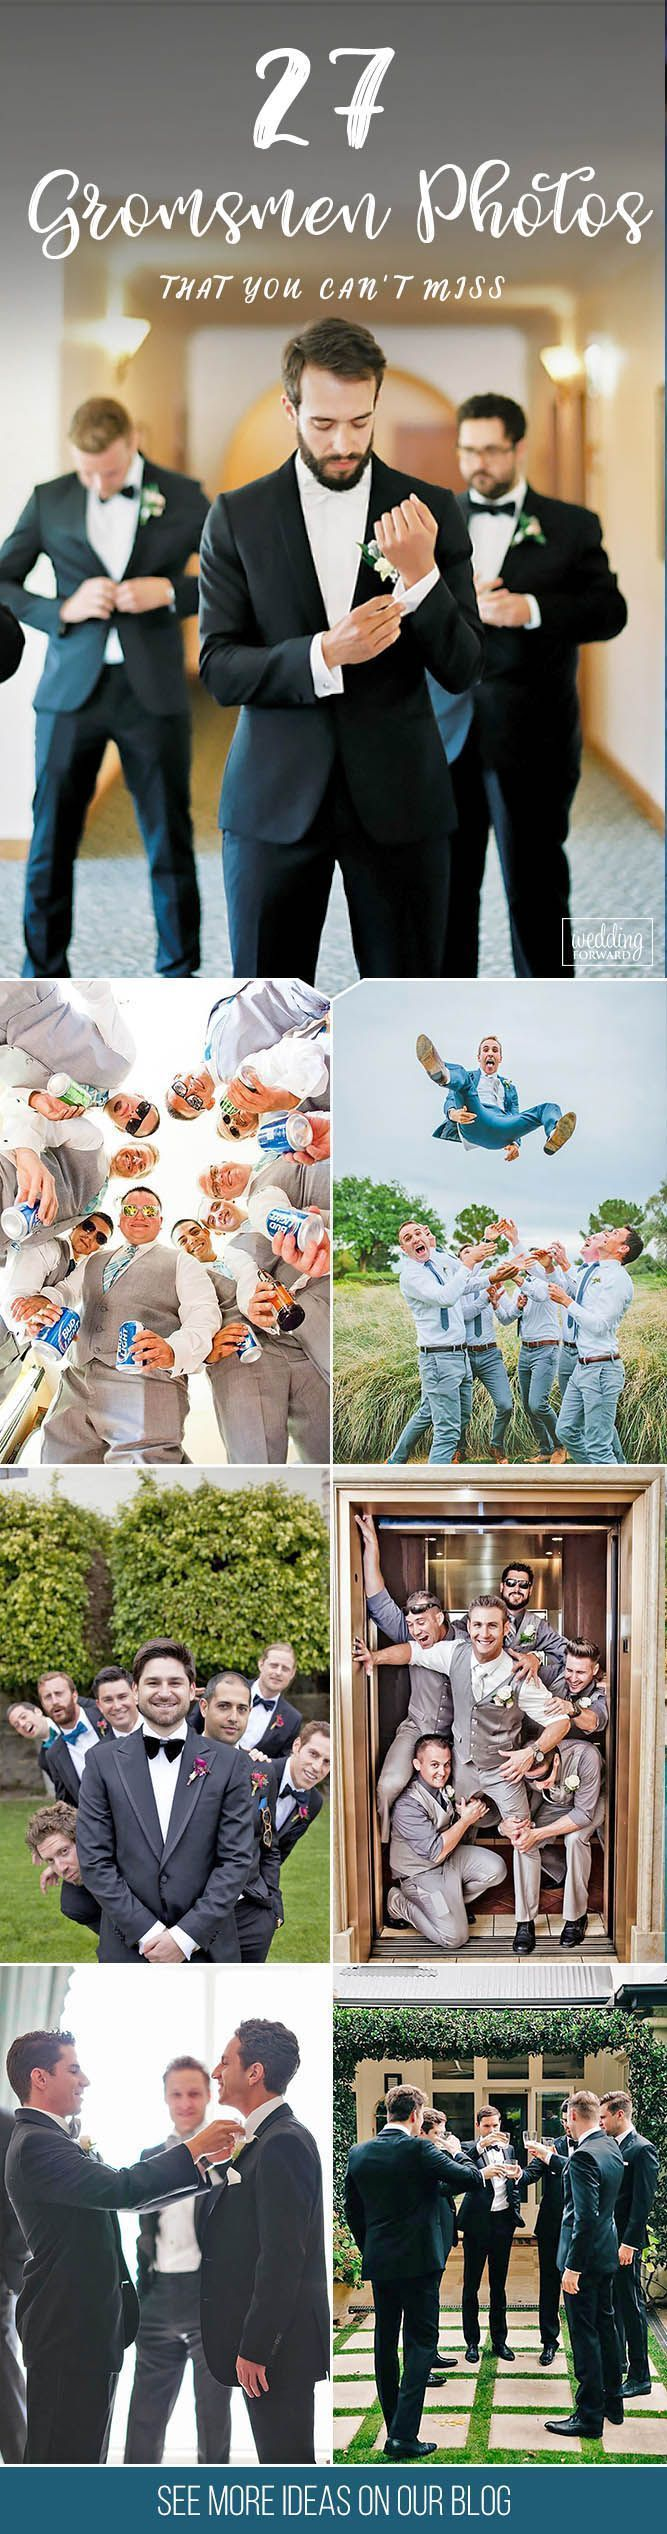 27 Awesome Groomsmen Photos You Can't Miss ❤️ You already got a list of must have photos with your bridesmaids. It's only fair we gathered a similar gallery of awesome groomsmen photos you can't miss! See more:      www.weddingforwar... ‎# groom #groomsmen